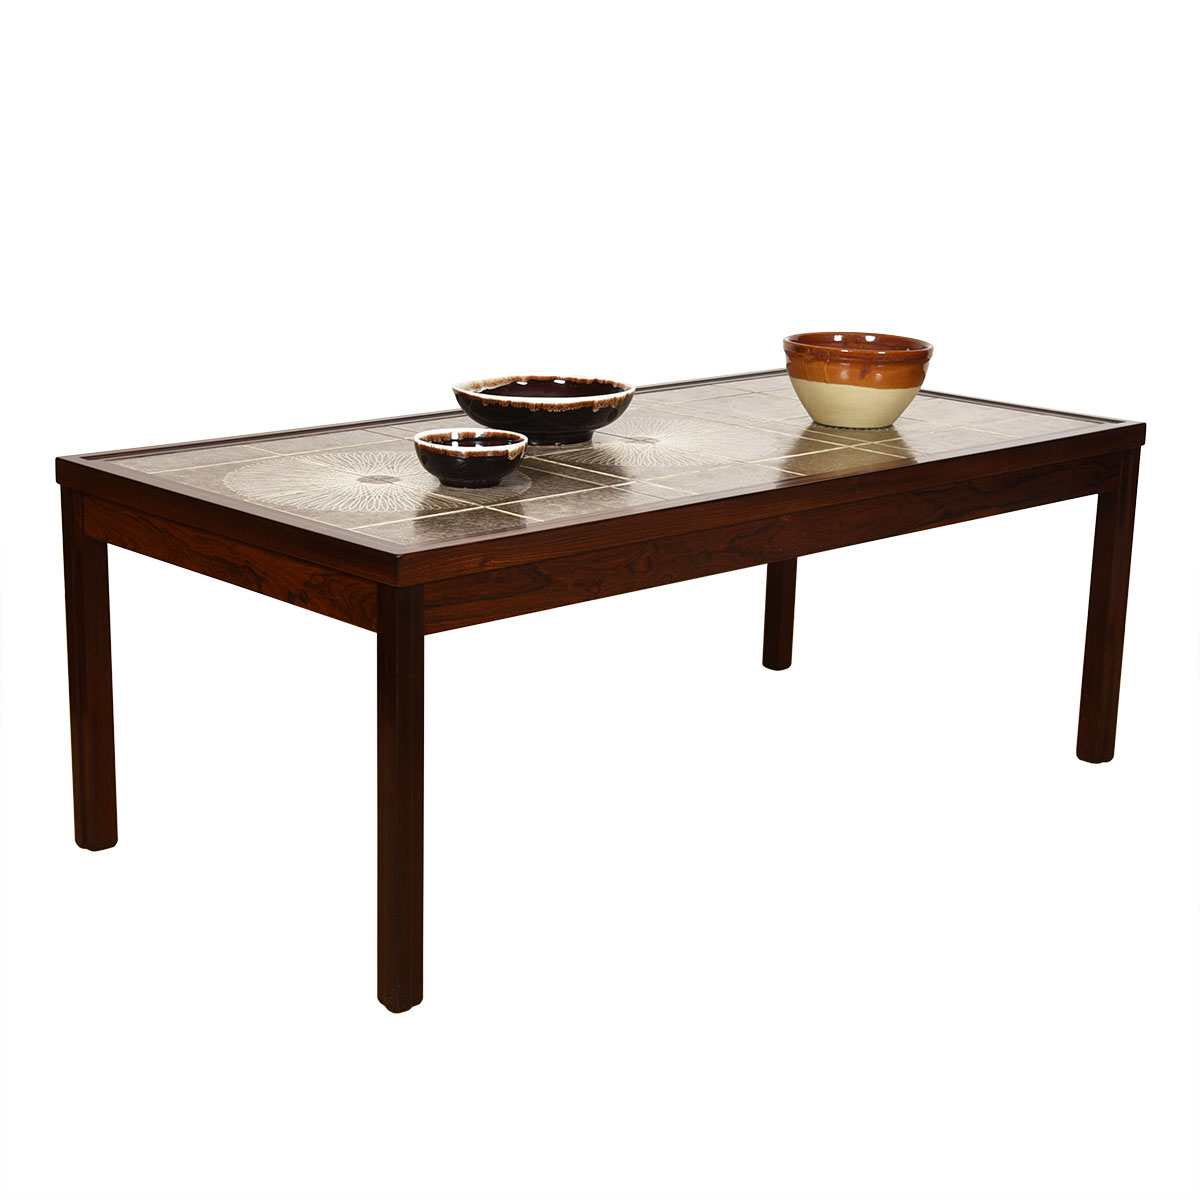 Scandinavian Modern Rosewood Tile Top Coffee Table